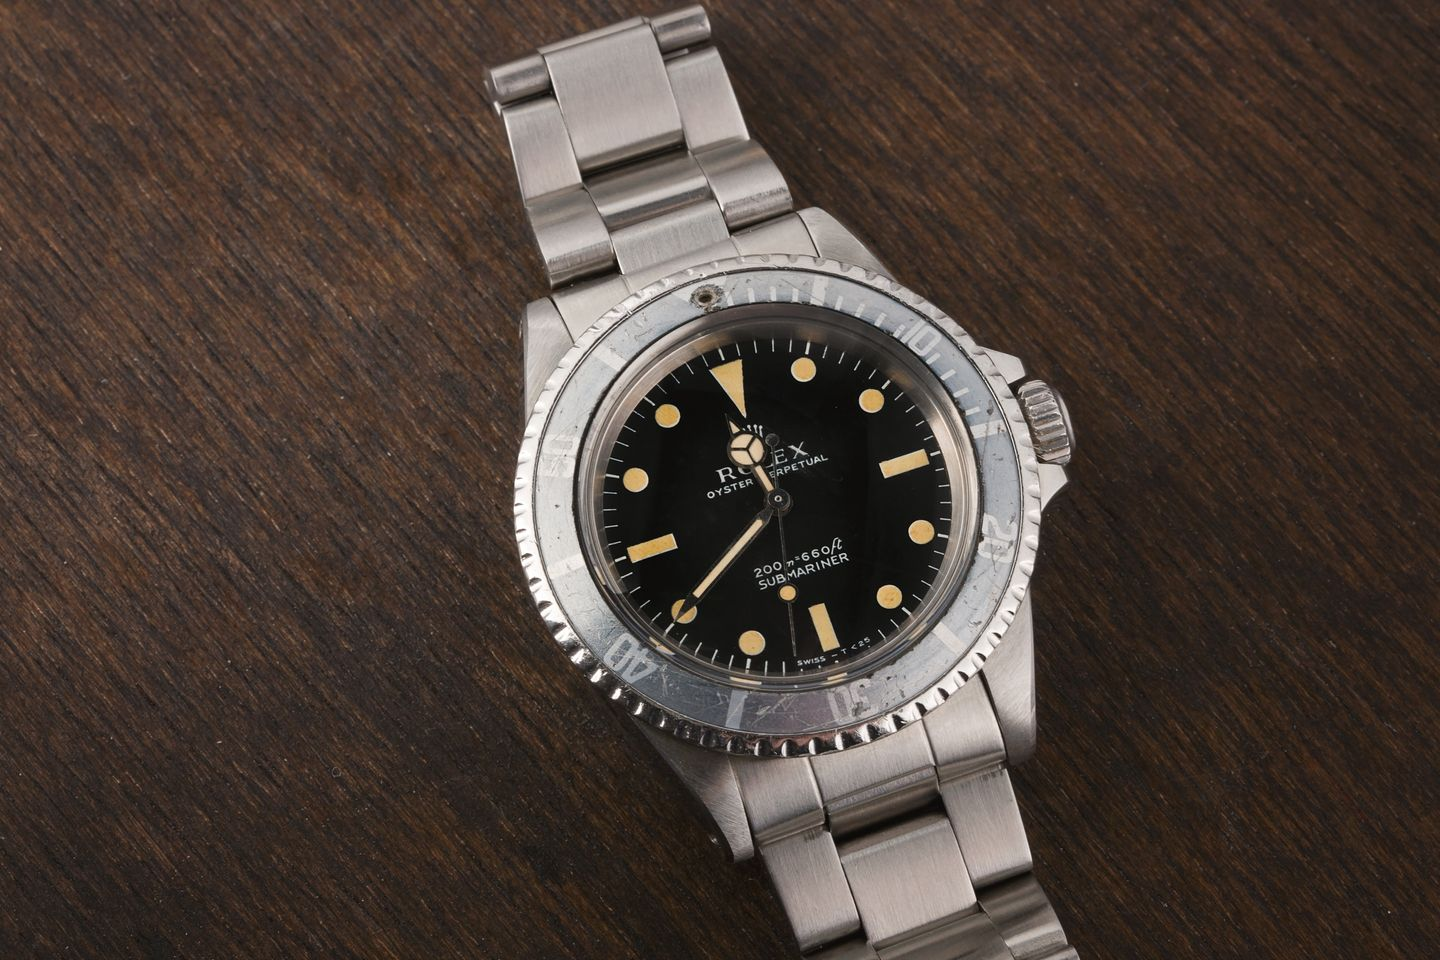 Vintage Rolex Submariner First Watch